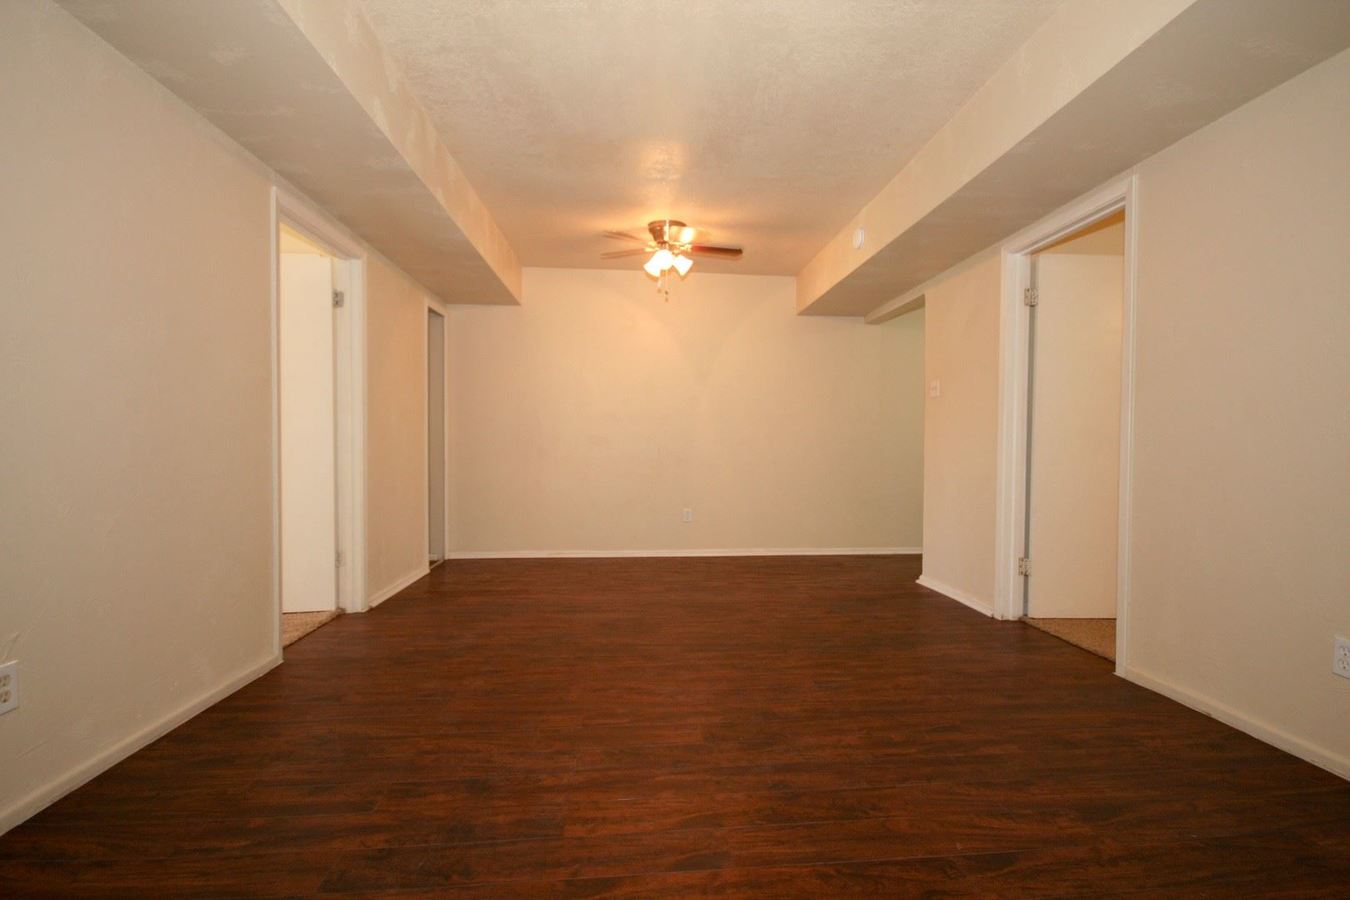 2 Bedrooms 2 Bathrooms Apartment for rent at 125 Victor in San Antonio, TX